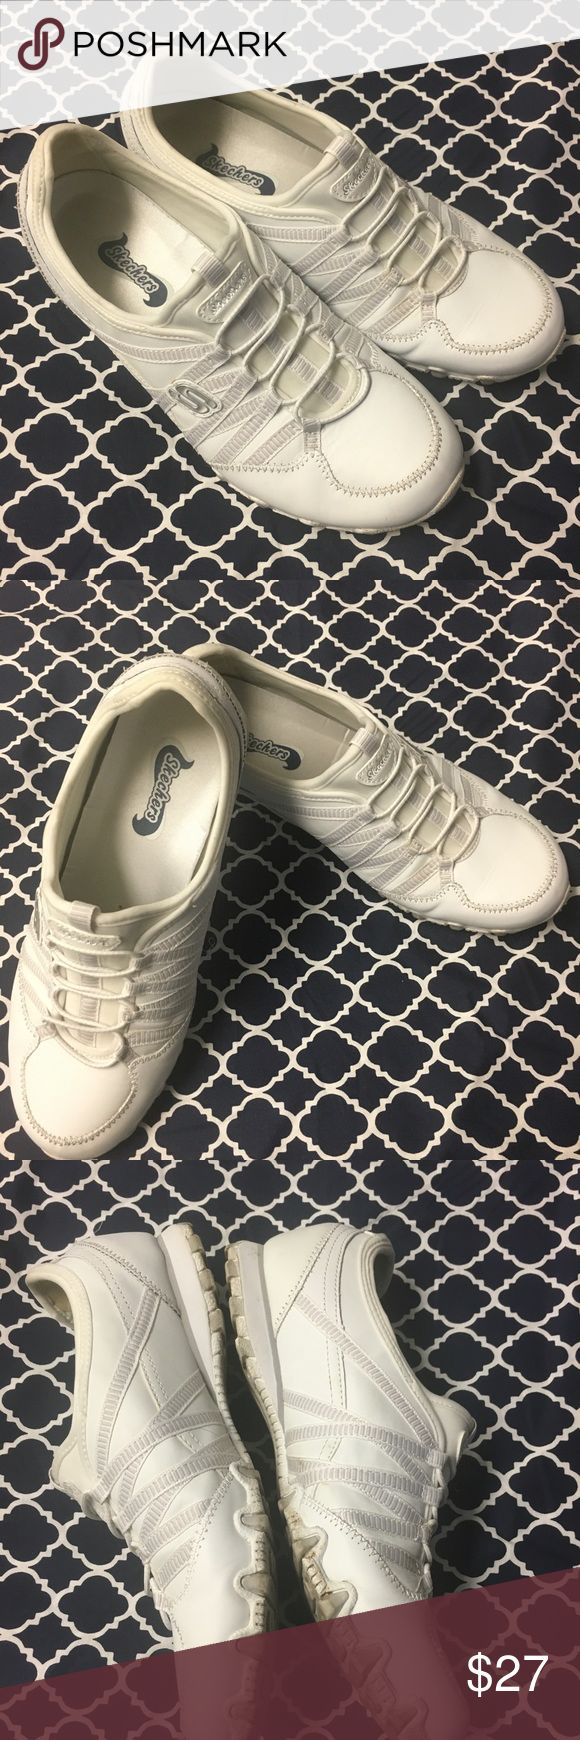 SKECHERS Bikers Dream Come True 21140  Size 8.5 Skechers white comfort leather sneaker size 8.5. In very good condition. Only the bottom shows minimal signs of wear. Skechers Shoes Sneakers